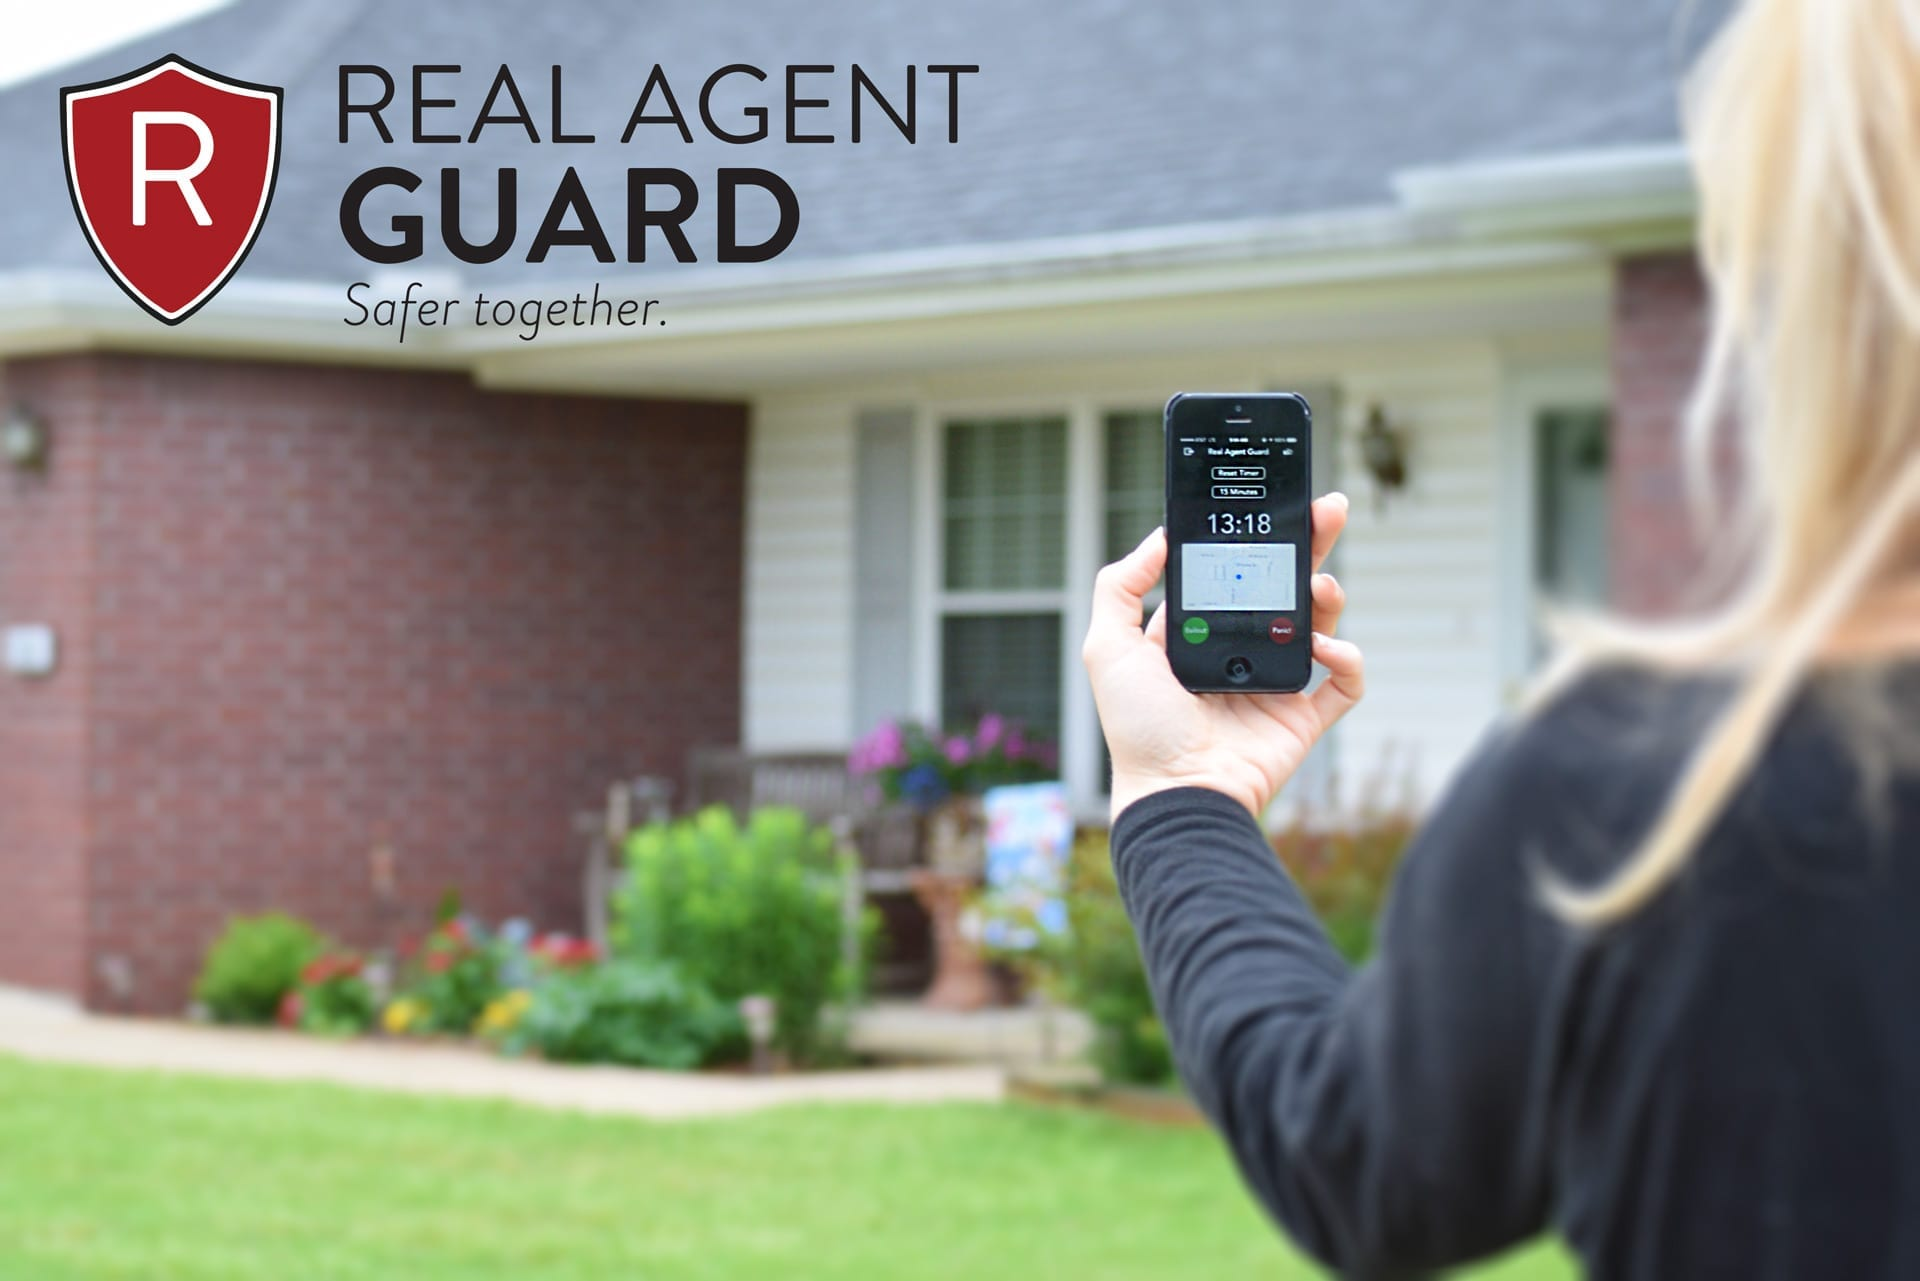 Real Agent Guard – Keeping Real Estate Agents Safe